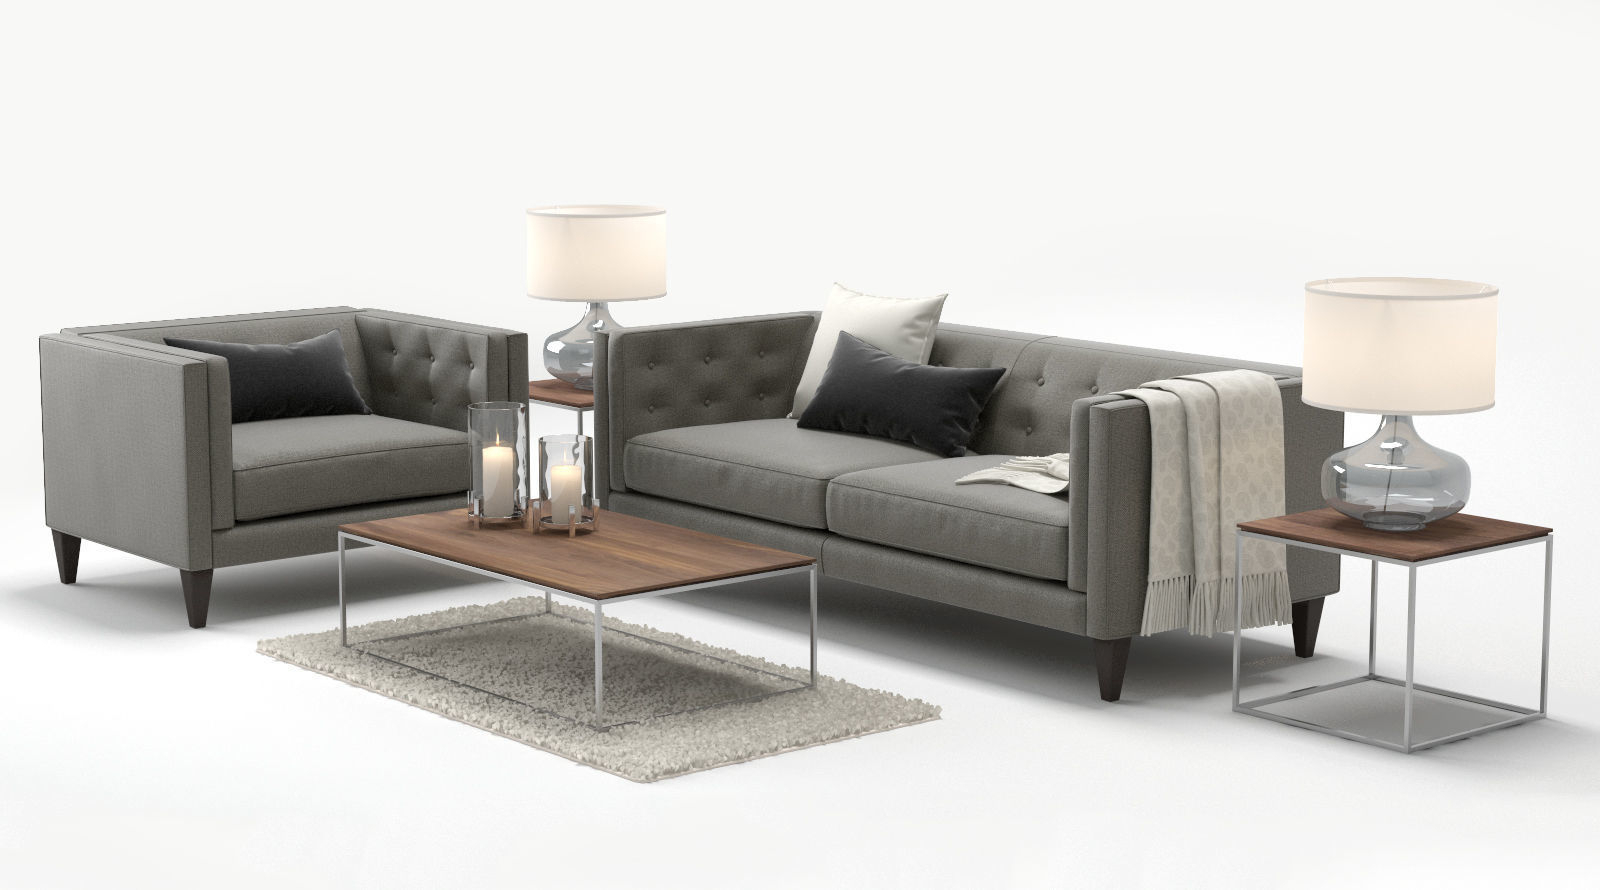 3D Crate And Barrel Aidan Sofa Chair | Cgtrader With Regard To Aidan Ii Sofa Chairs (Image 3 of 20)